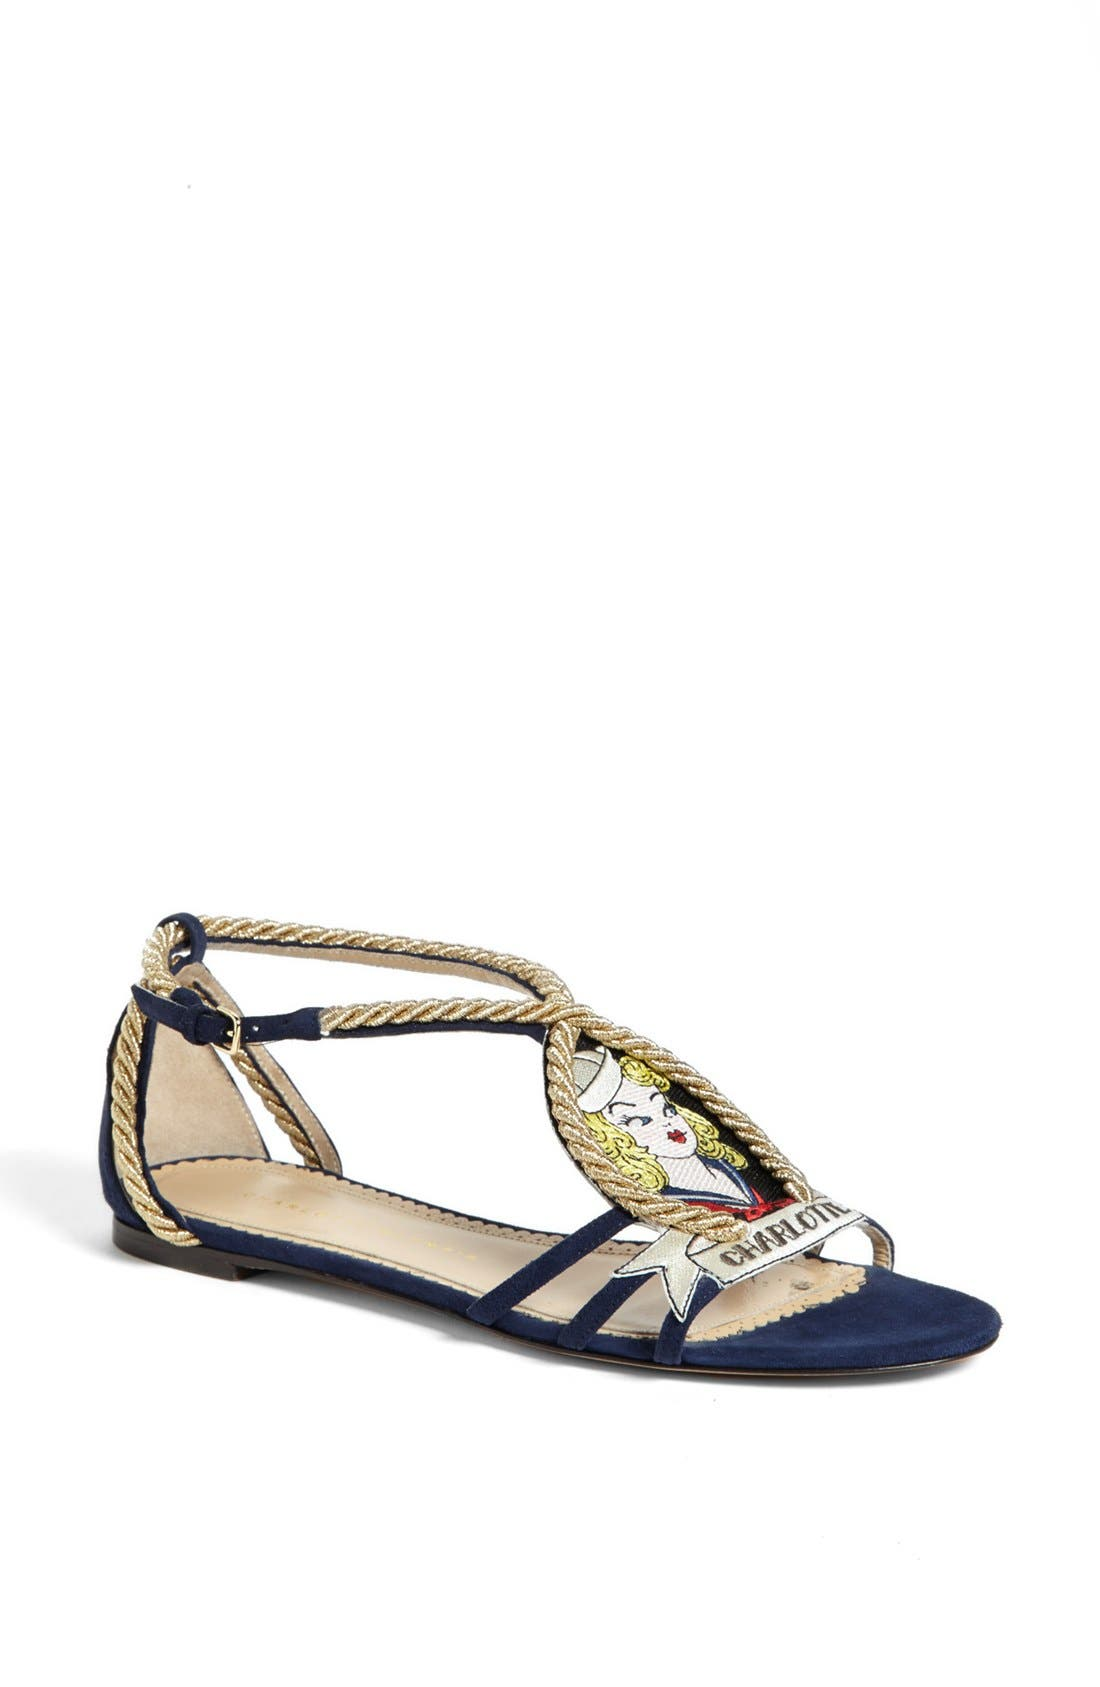 Alternate Image 1 Selected - Charlotte Olympia 'Ahoy Sailor' Sandal